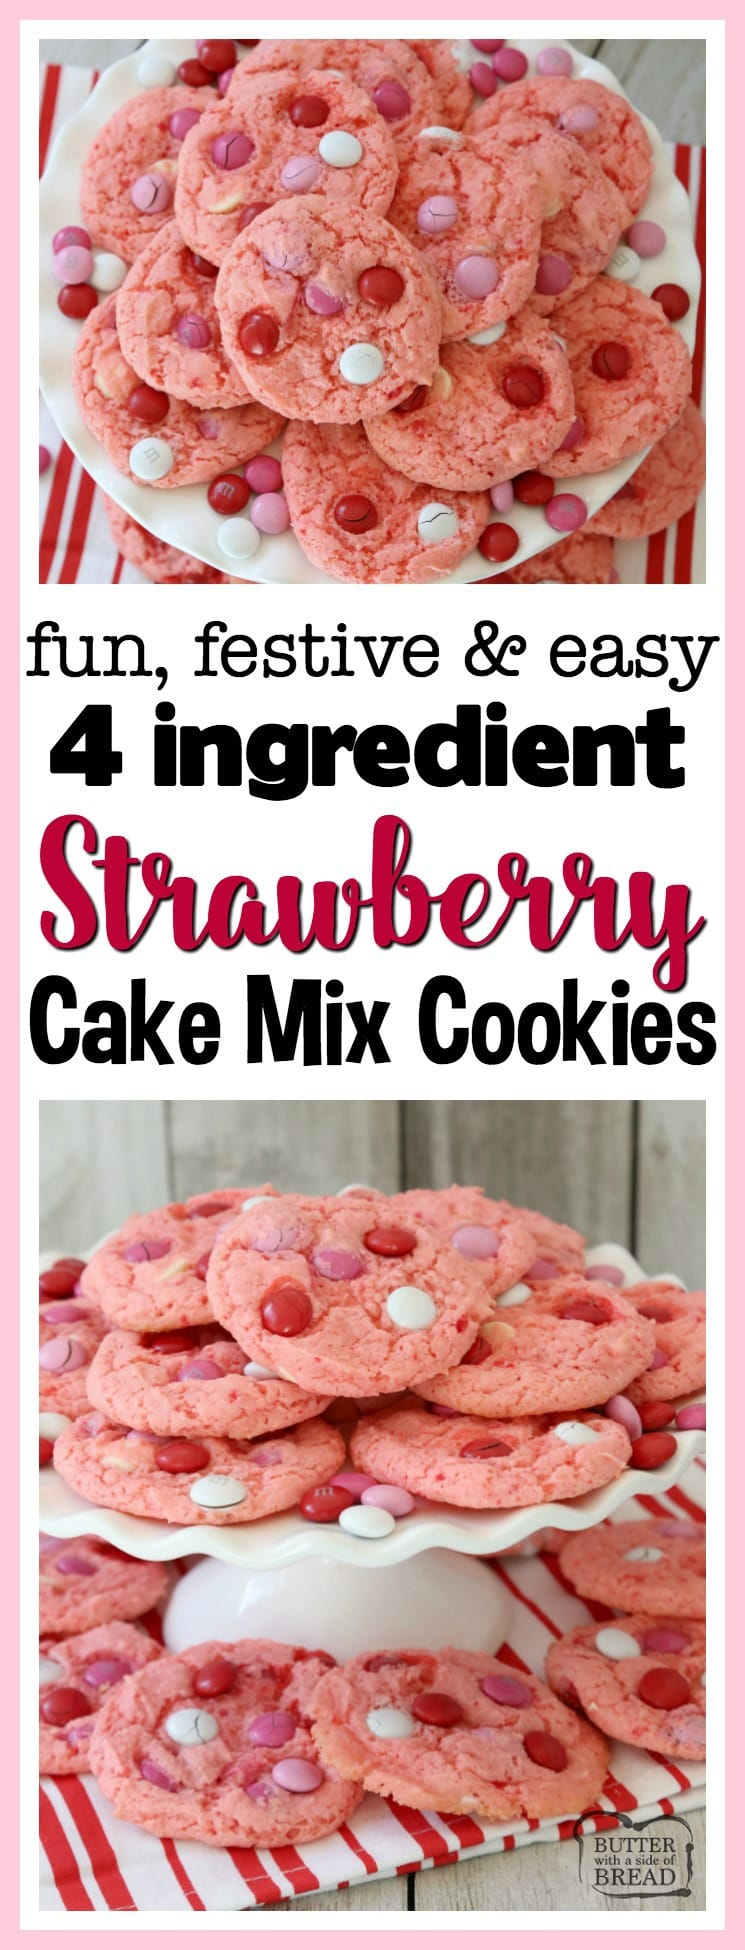 Strawberry Cake Mix Cookies are soft & sweet and made with just 4 ingredients! Super simple to make these cute, festive cake mix cookies. The strawberry flavor is just perfect.